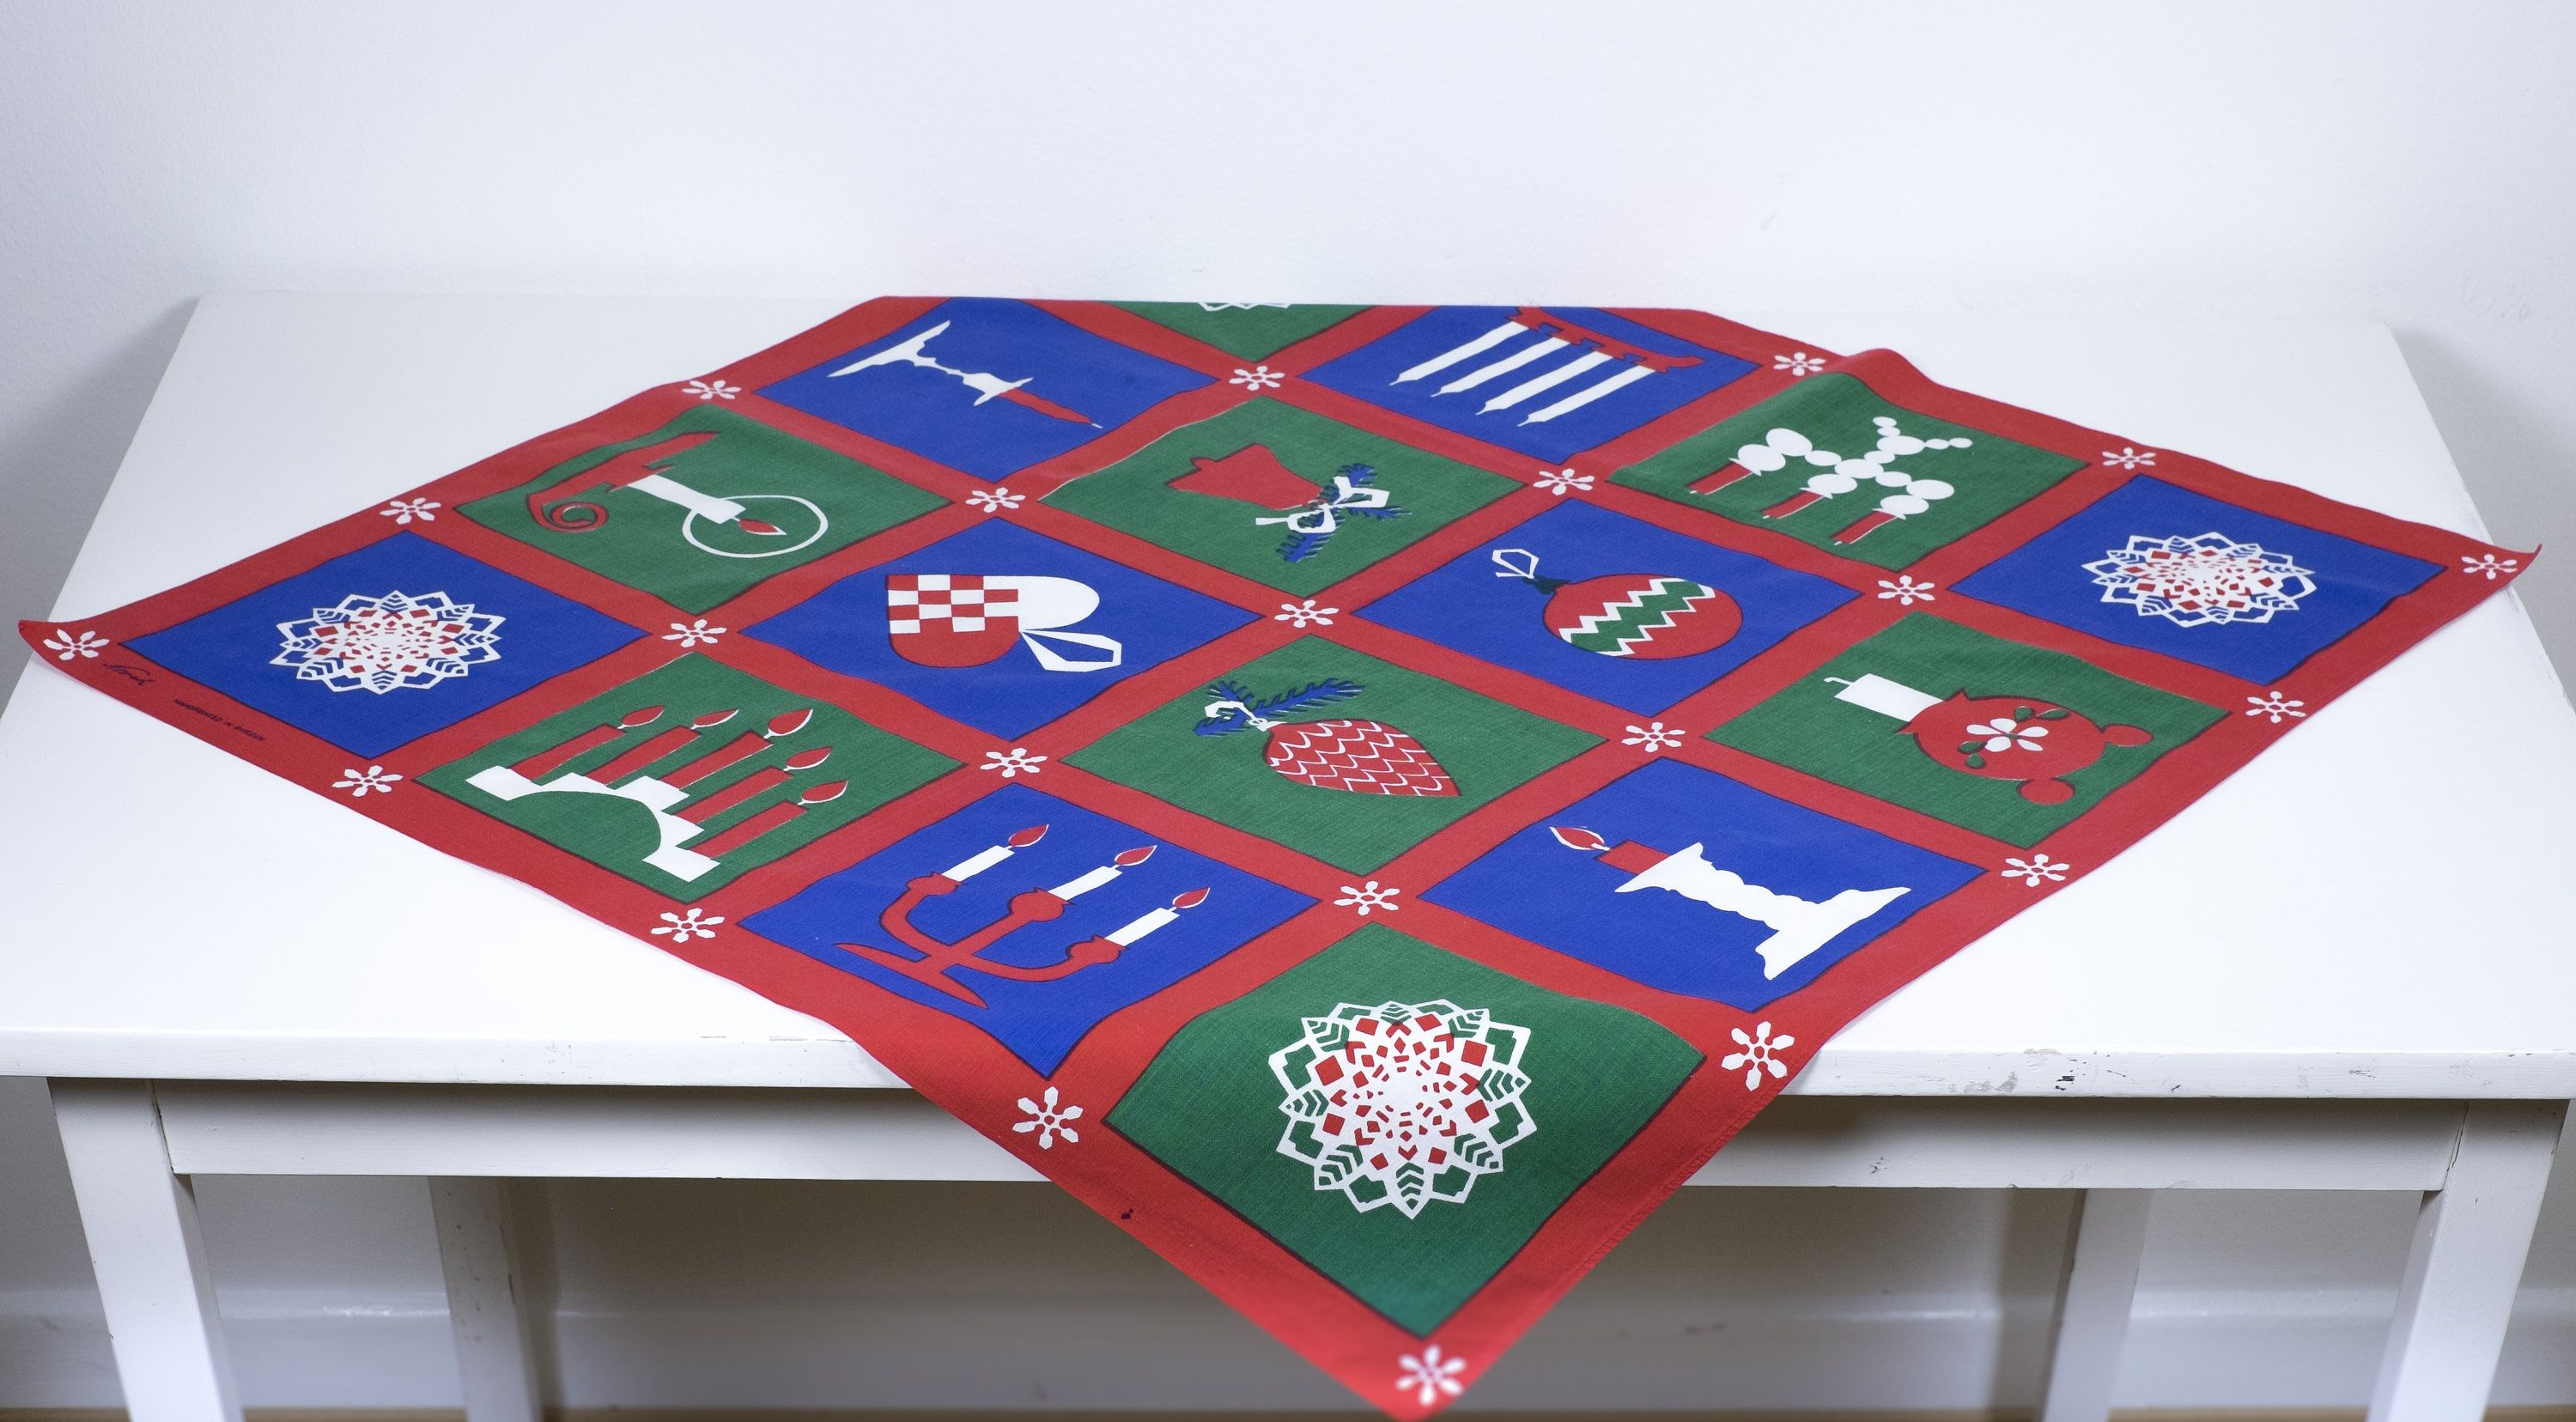 Vintage Mid Century Modern Swedish Christmas Tablecloth By Christmas Table Cloth Scandinavian Christmas Decorations Christmas Table Linen